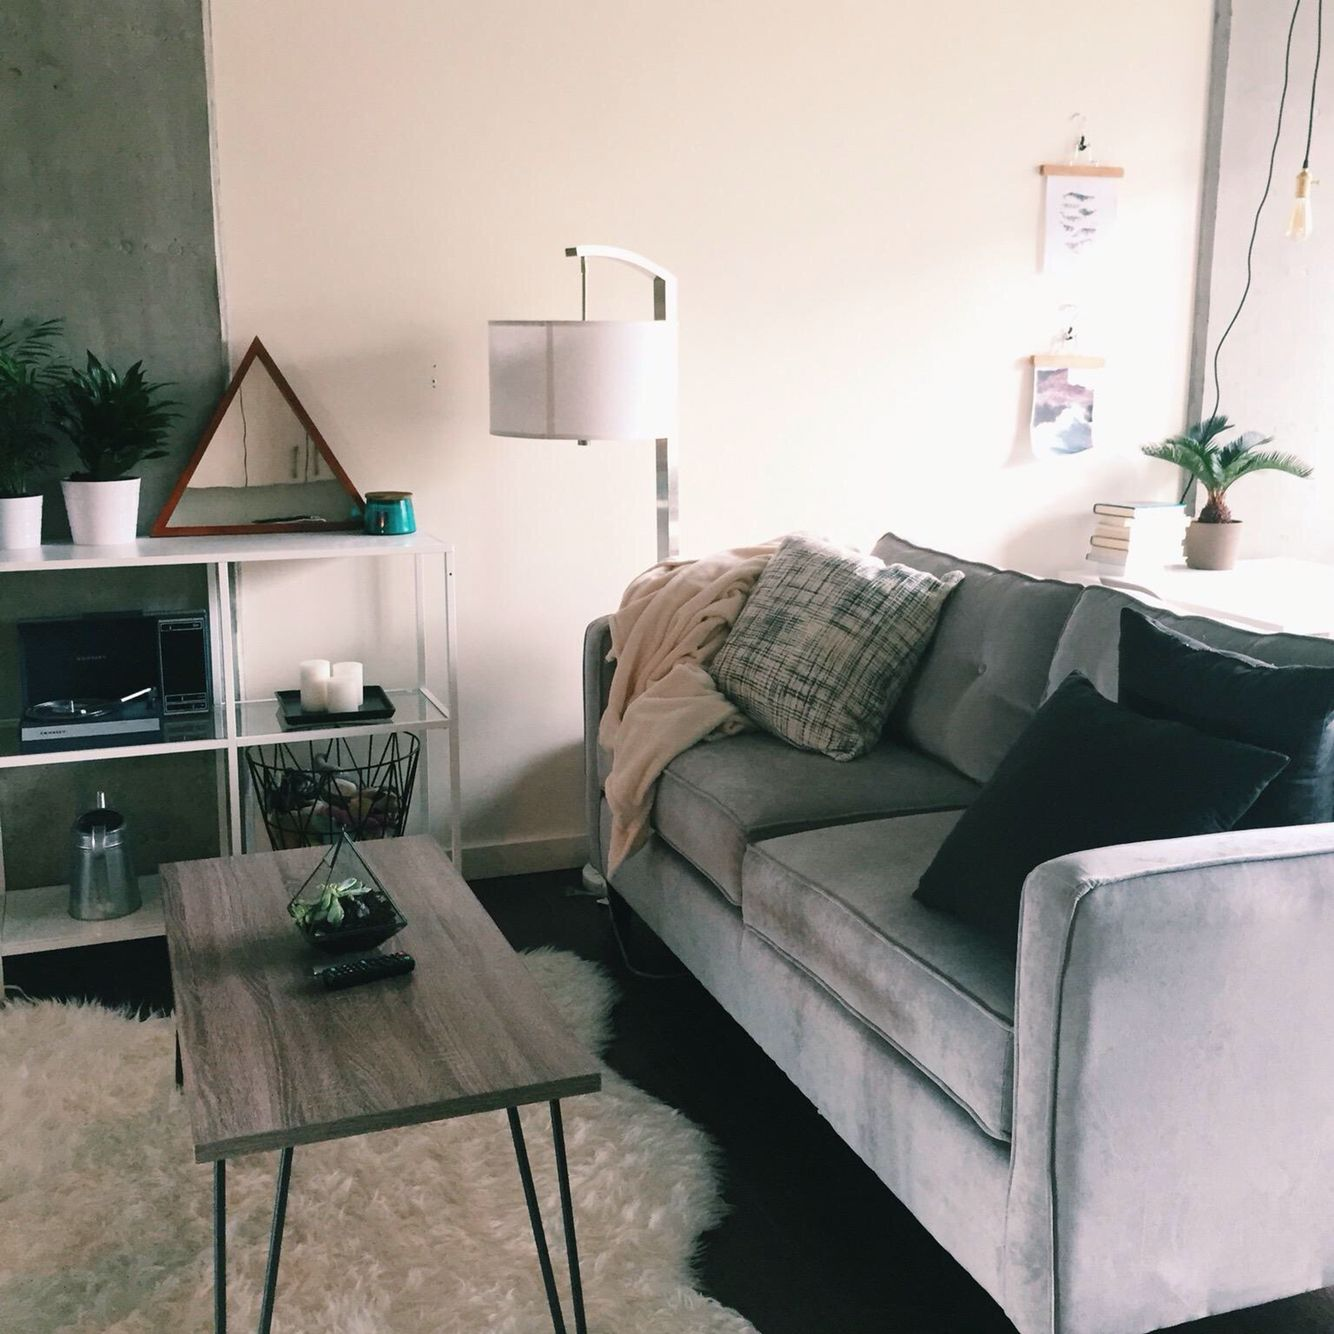 Studio Apartment Living Room: Couch & Coffee Table: Wayfair